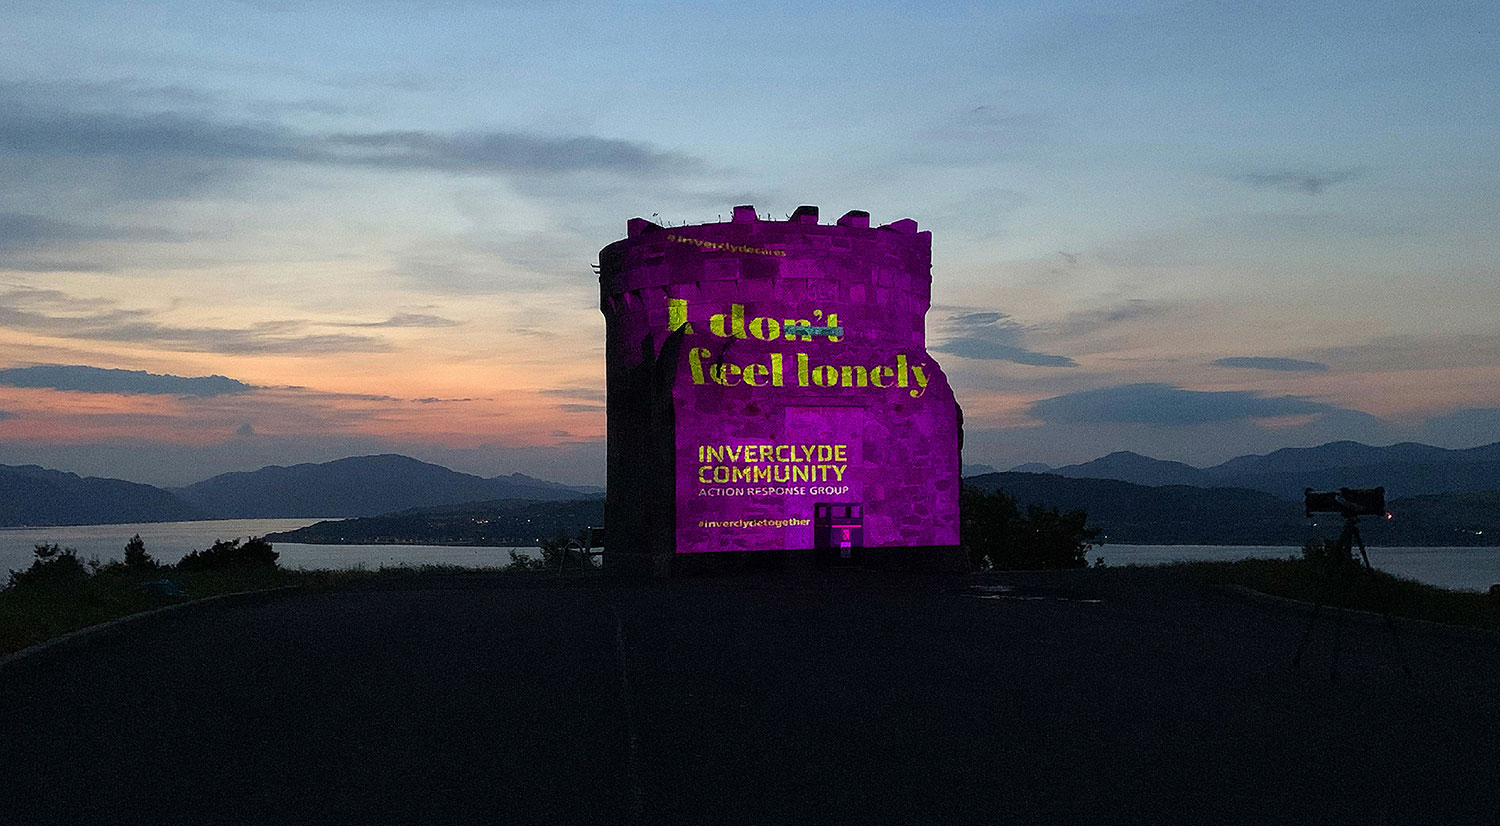 Hutton Creative Design Create Campaign for Inverclyde Community Action Response Group